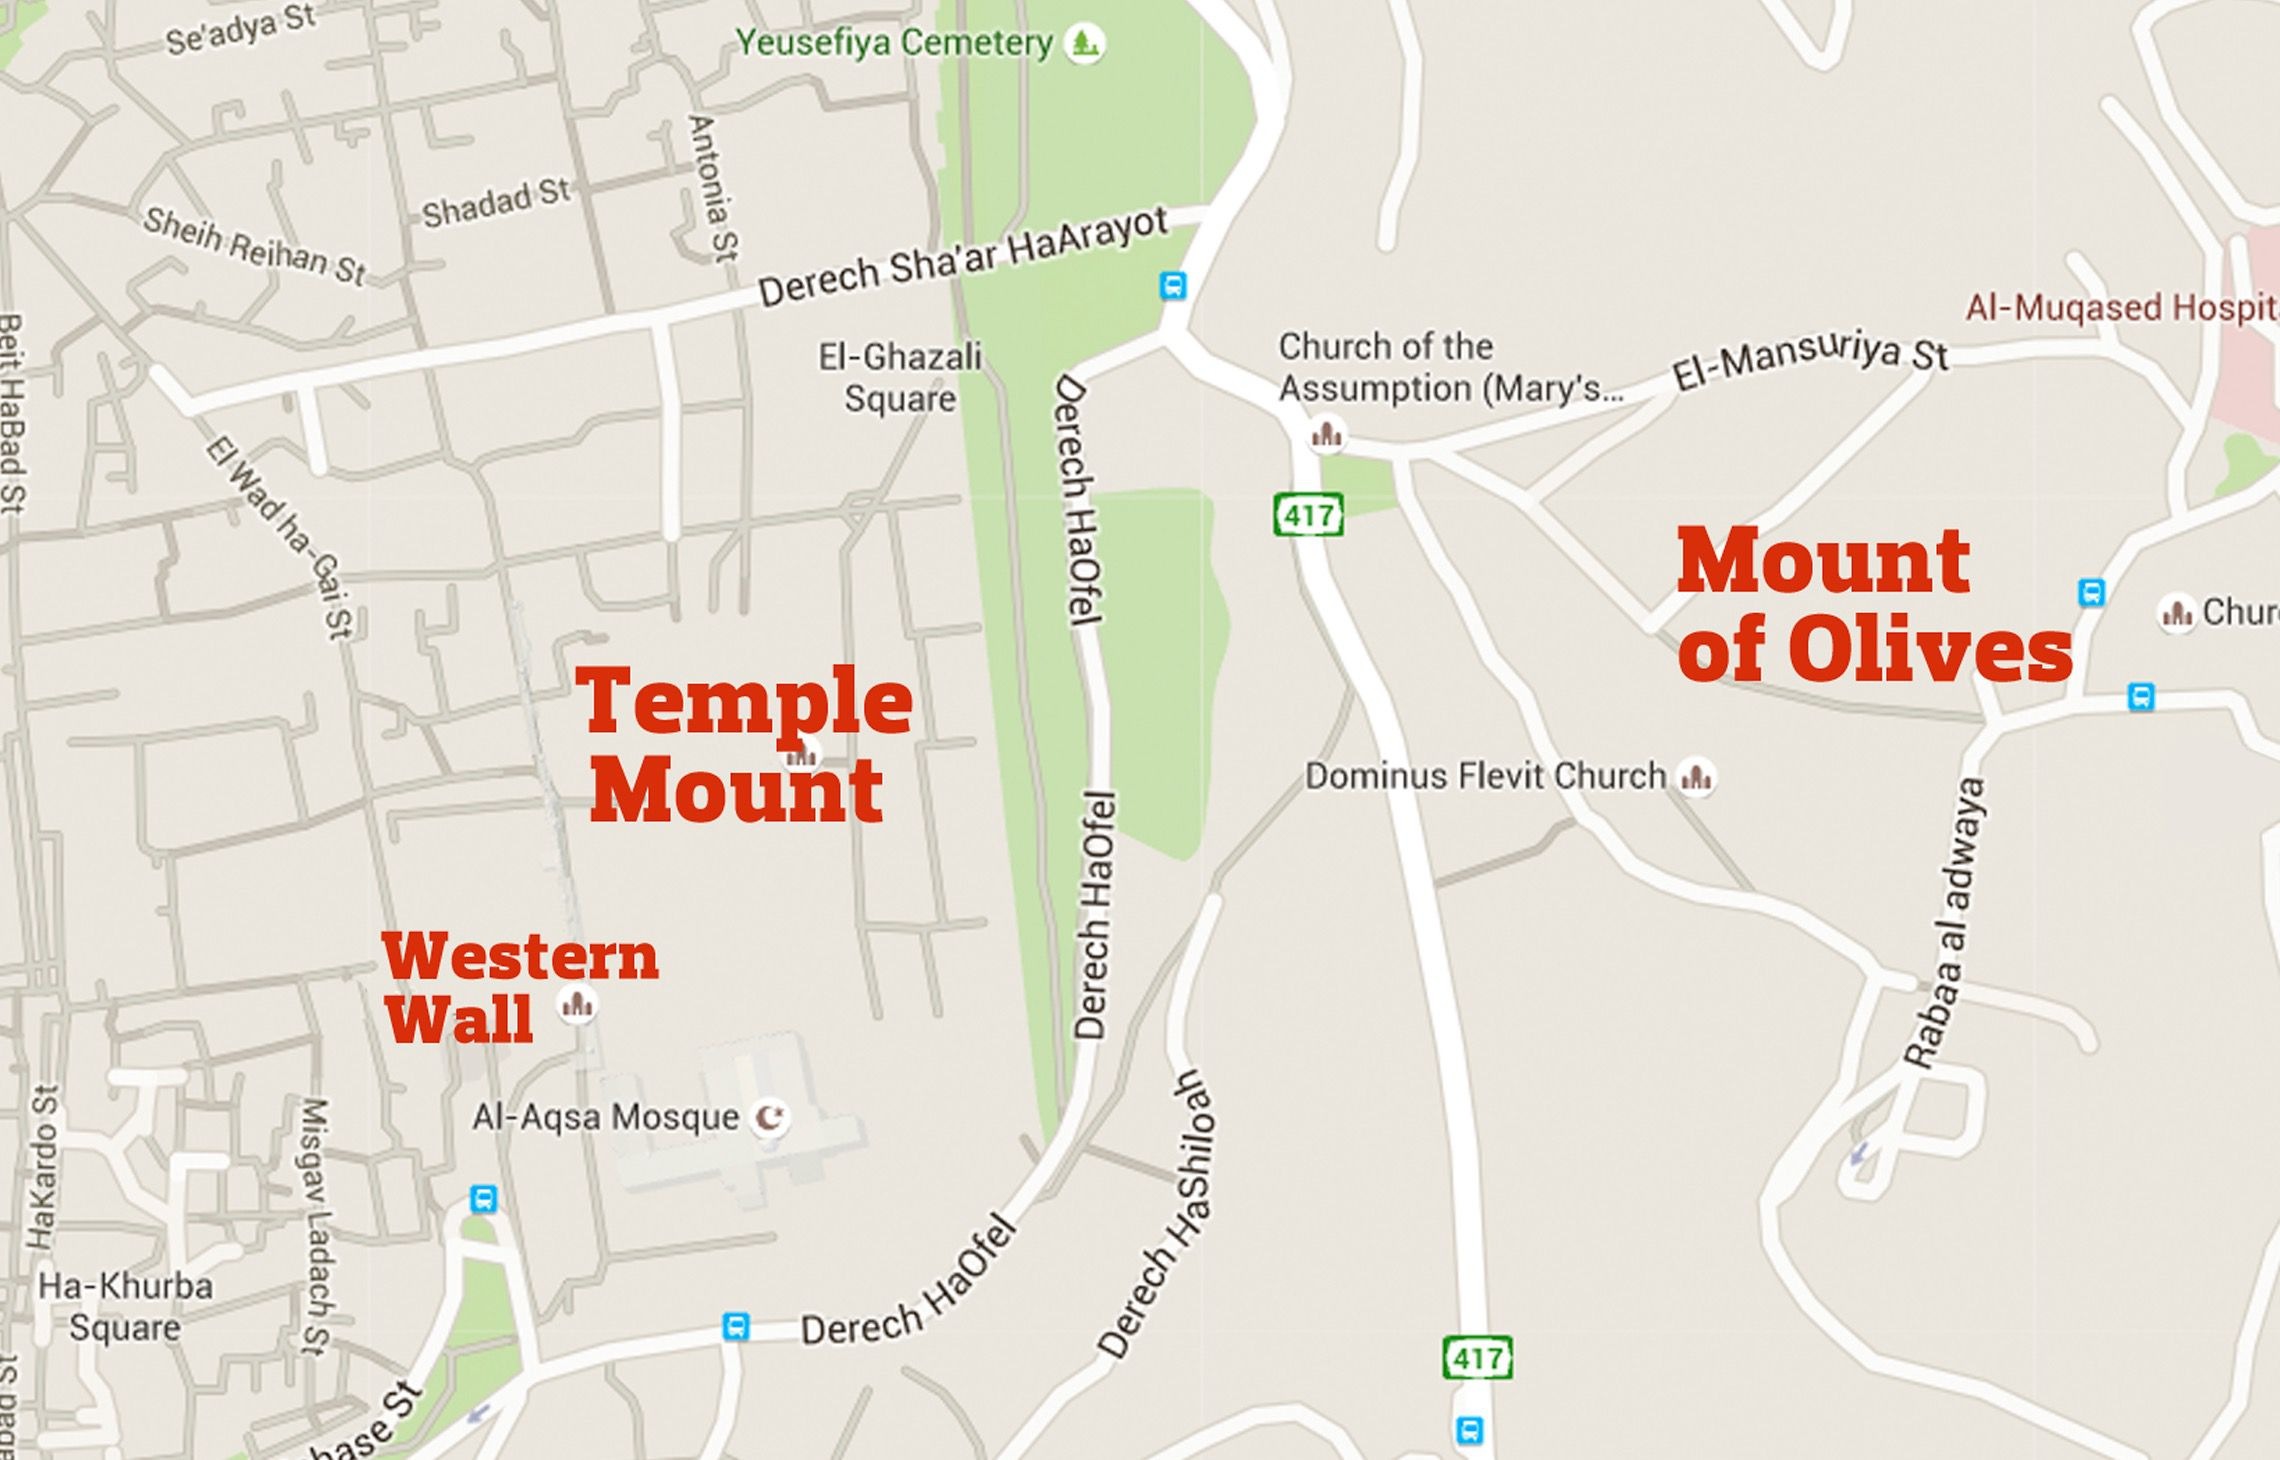 temple mount revival movement revels in crowdfunded passover sacrifice —but at what cost – the forward. temple mount revival movement revels in crowdfunded passover